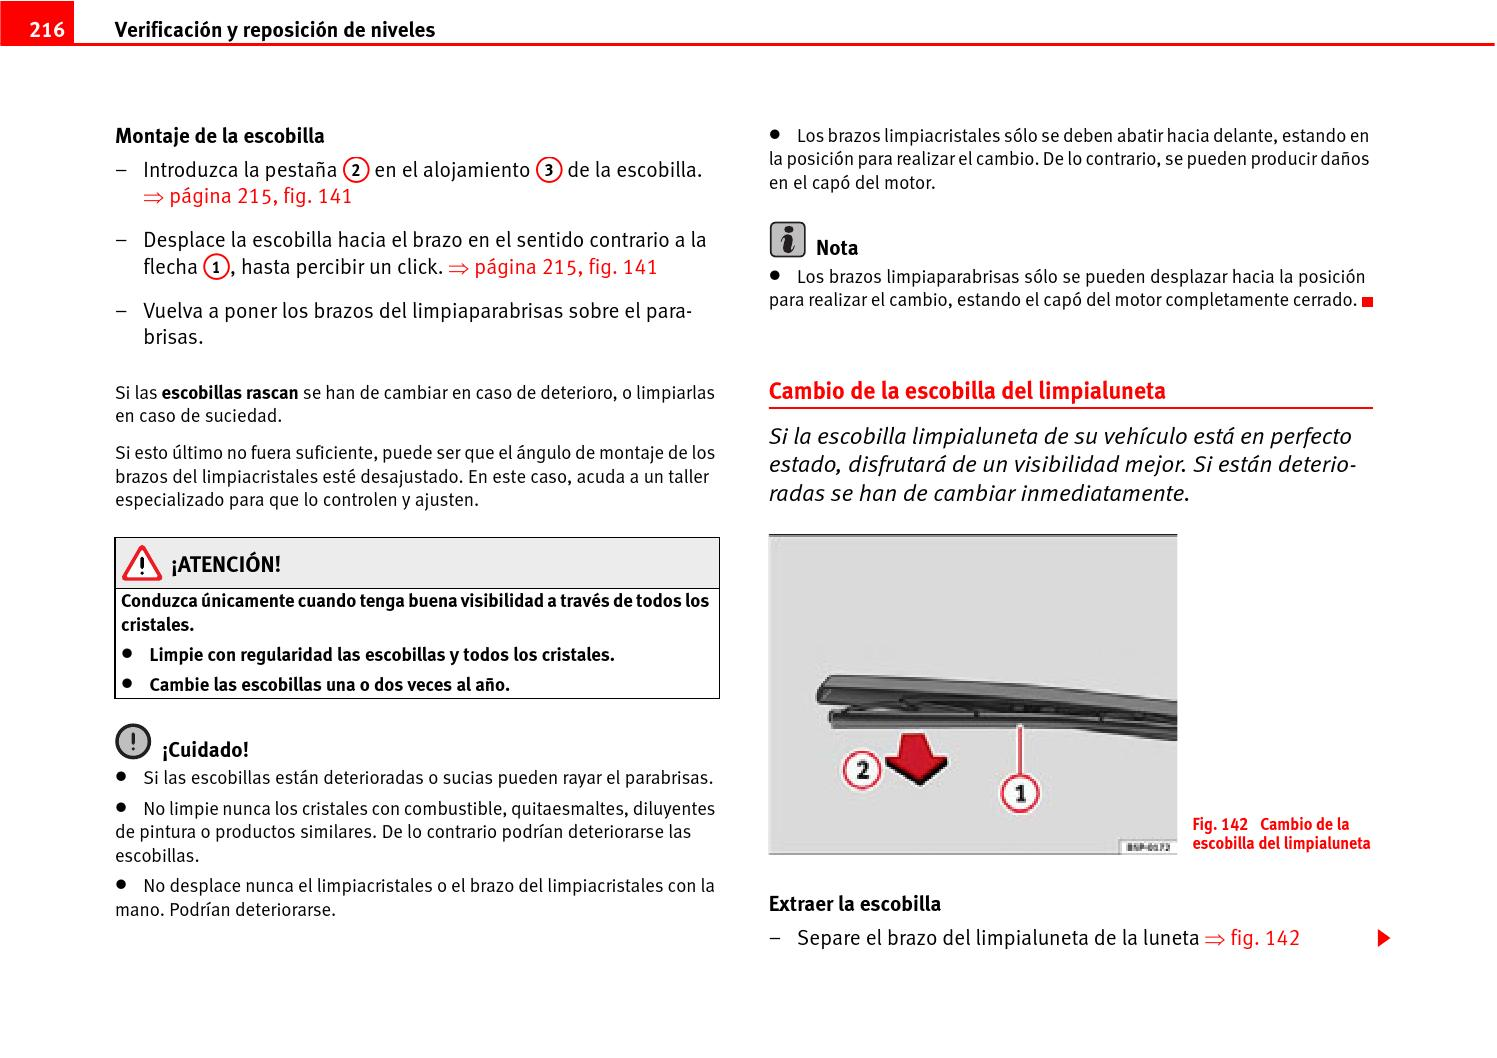 Cambio Escobillas Limpiaparabrisas Seat Manual Instrucciones Seat Leon 2 By Burillo Issuu